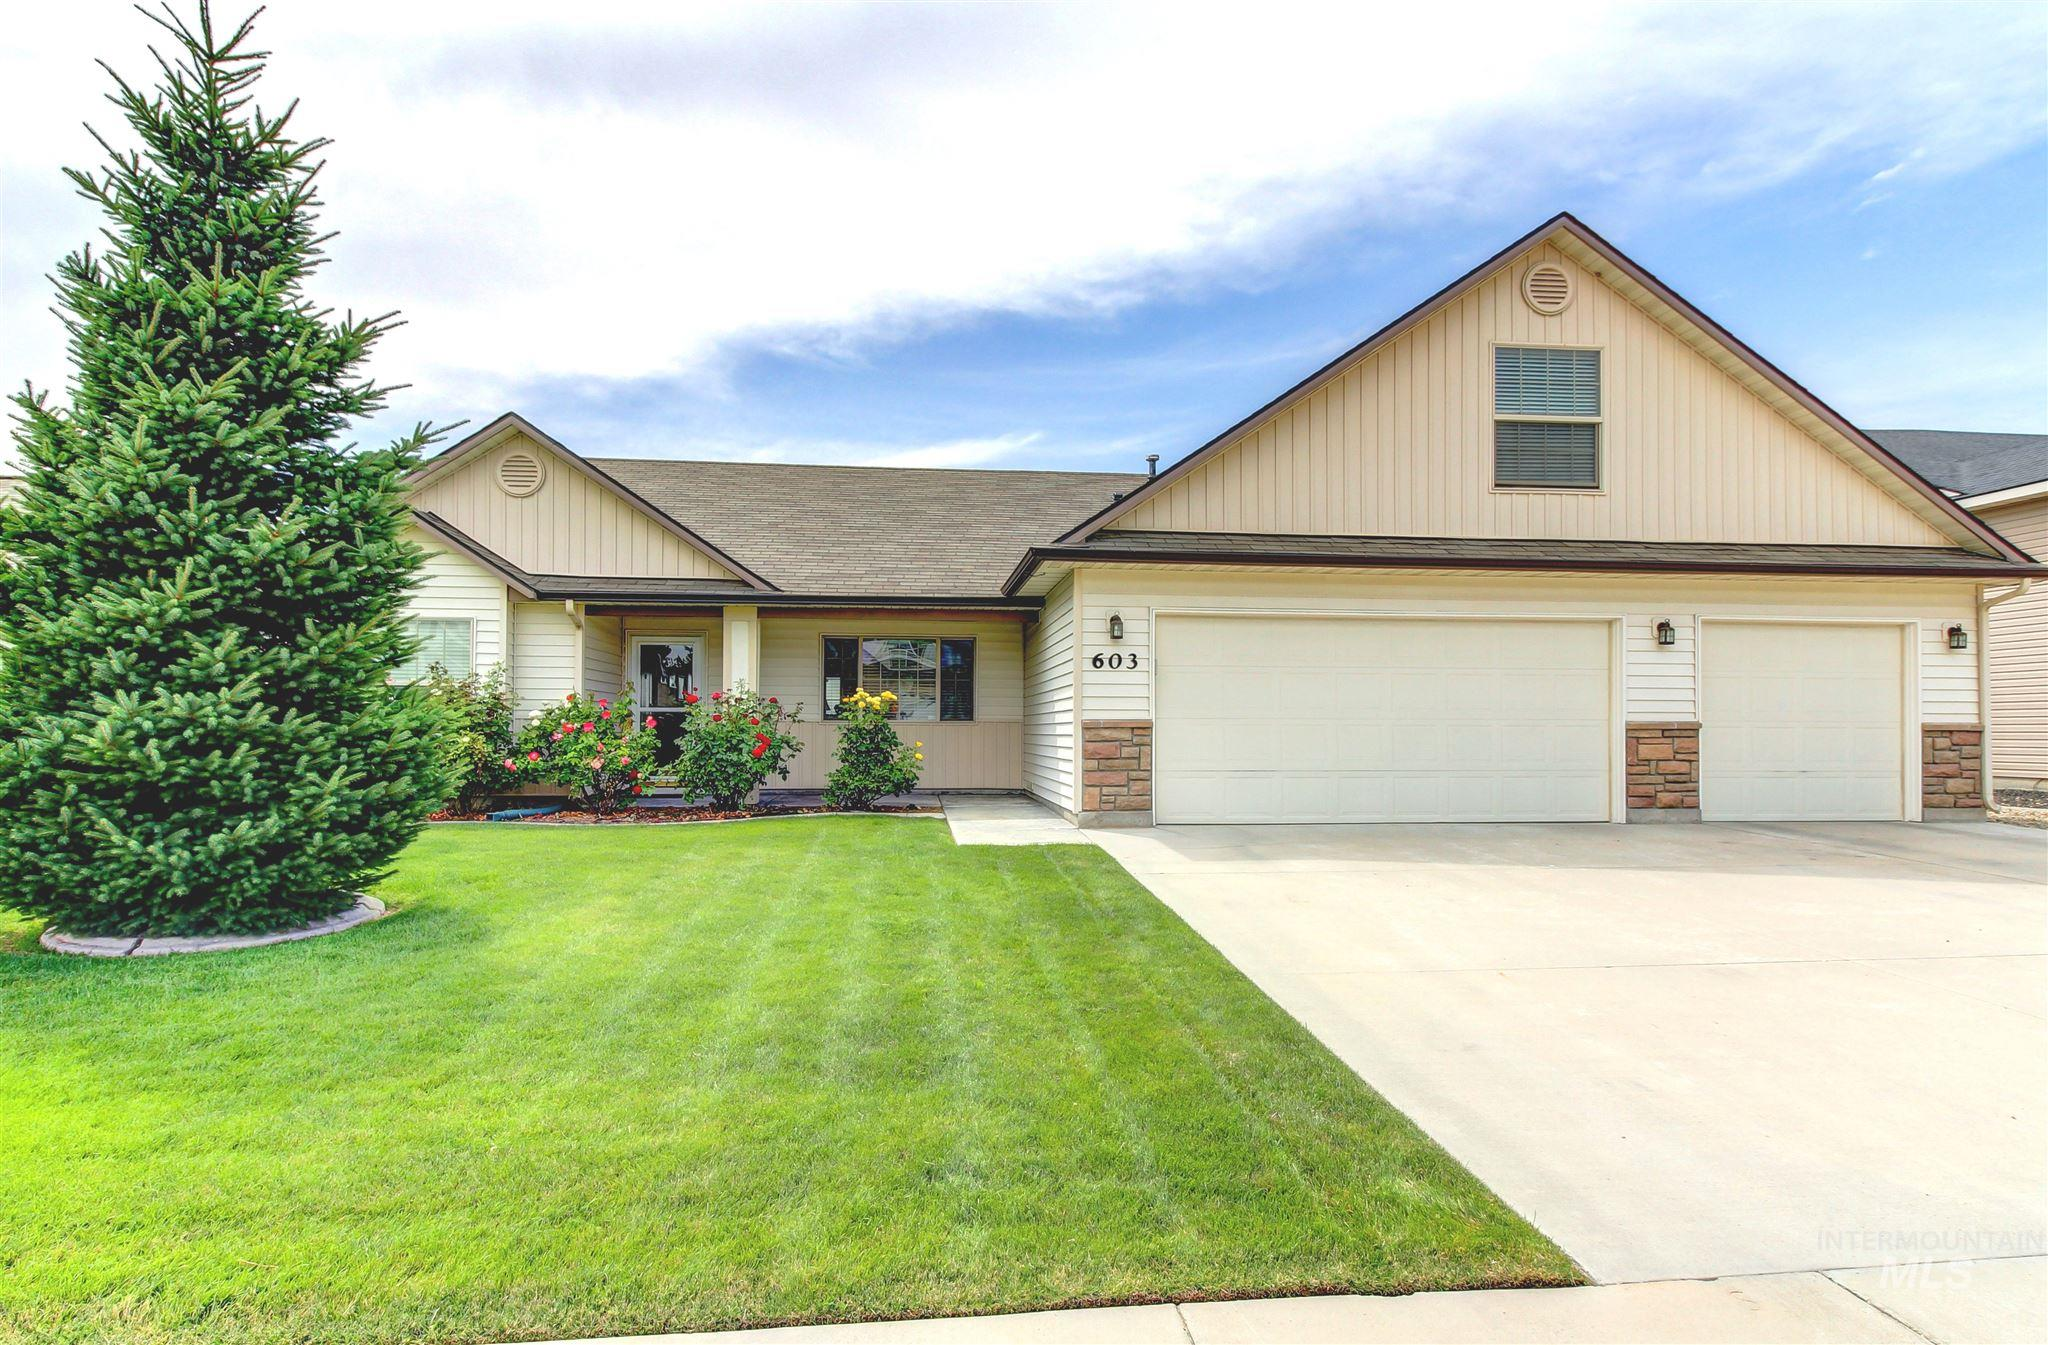 Photo for 603 Castle Rock Ave, Middleton, ID 83644 (MLS # 98775290)